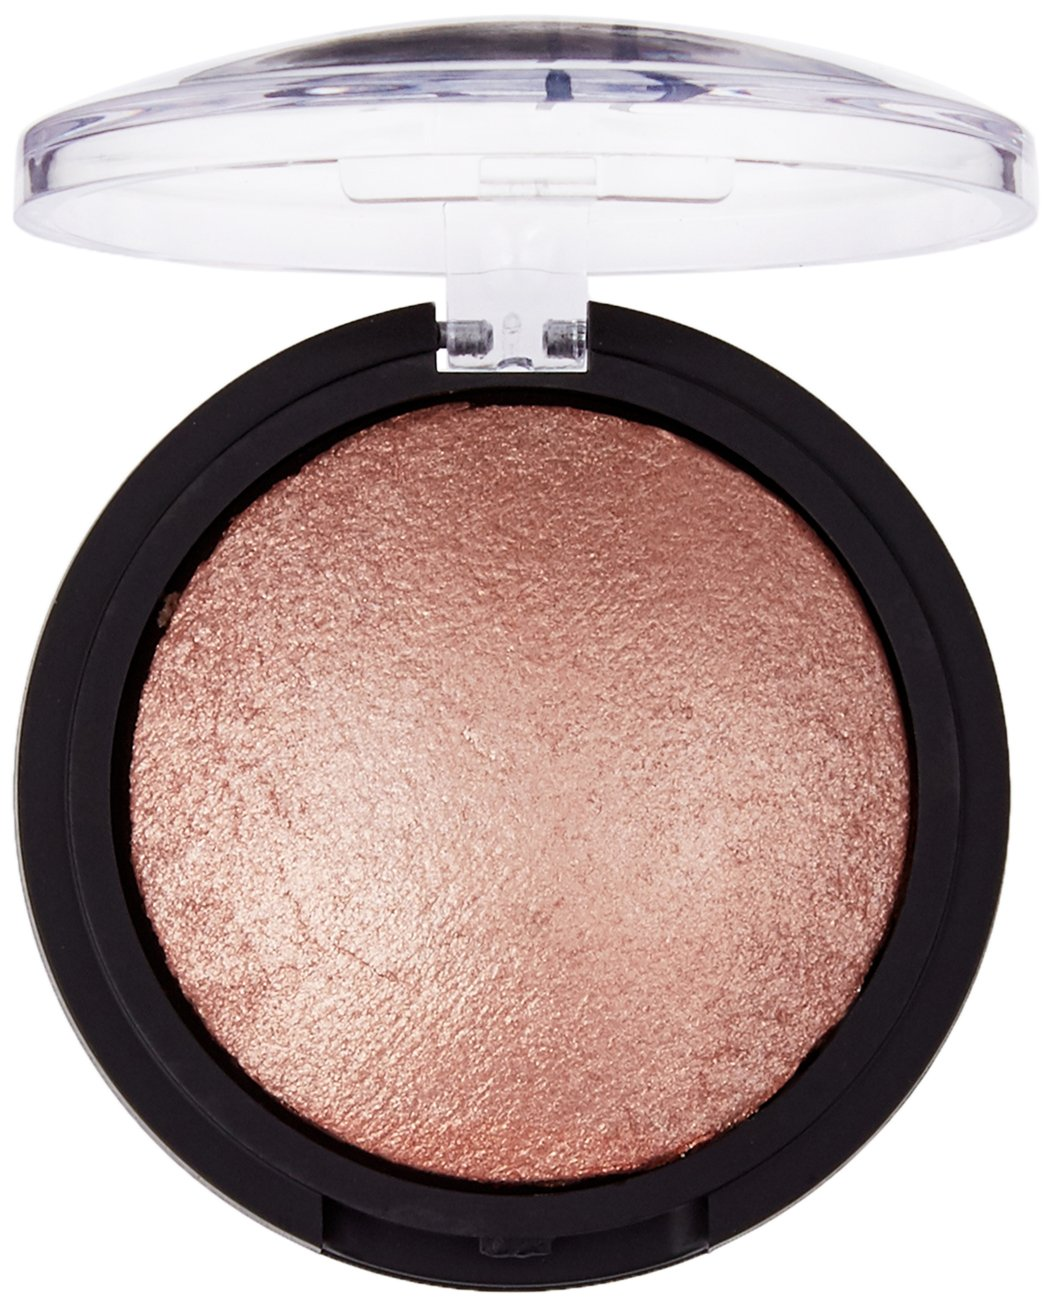 e.l.f. Baked Highlighter, Blush Gems, 0.17 Ounce (Pack of 72) by Elf (Image #4)